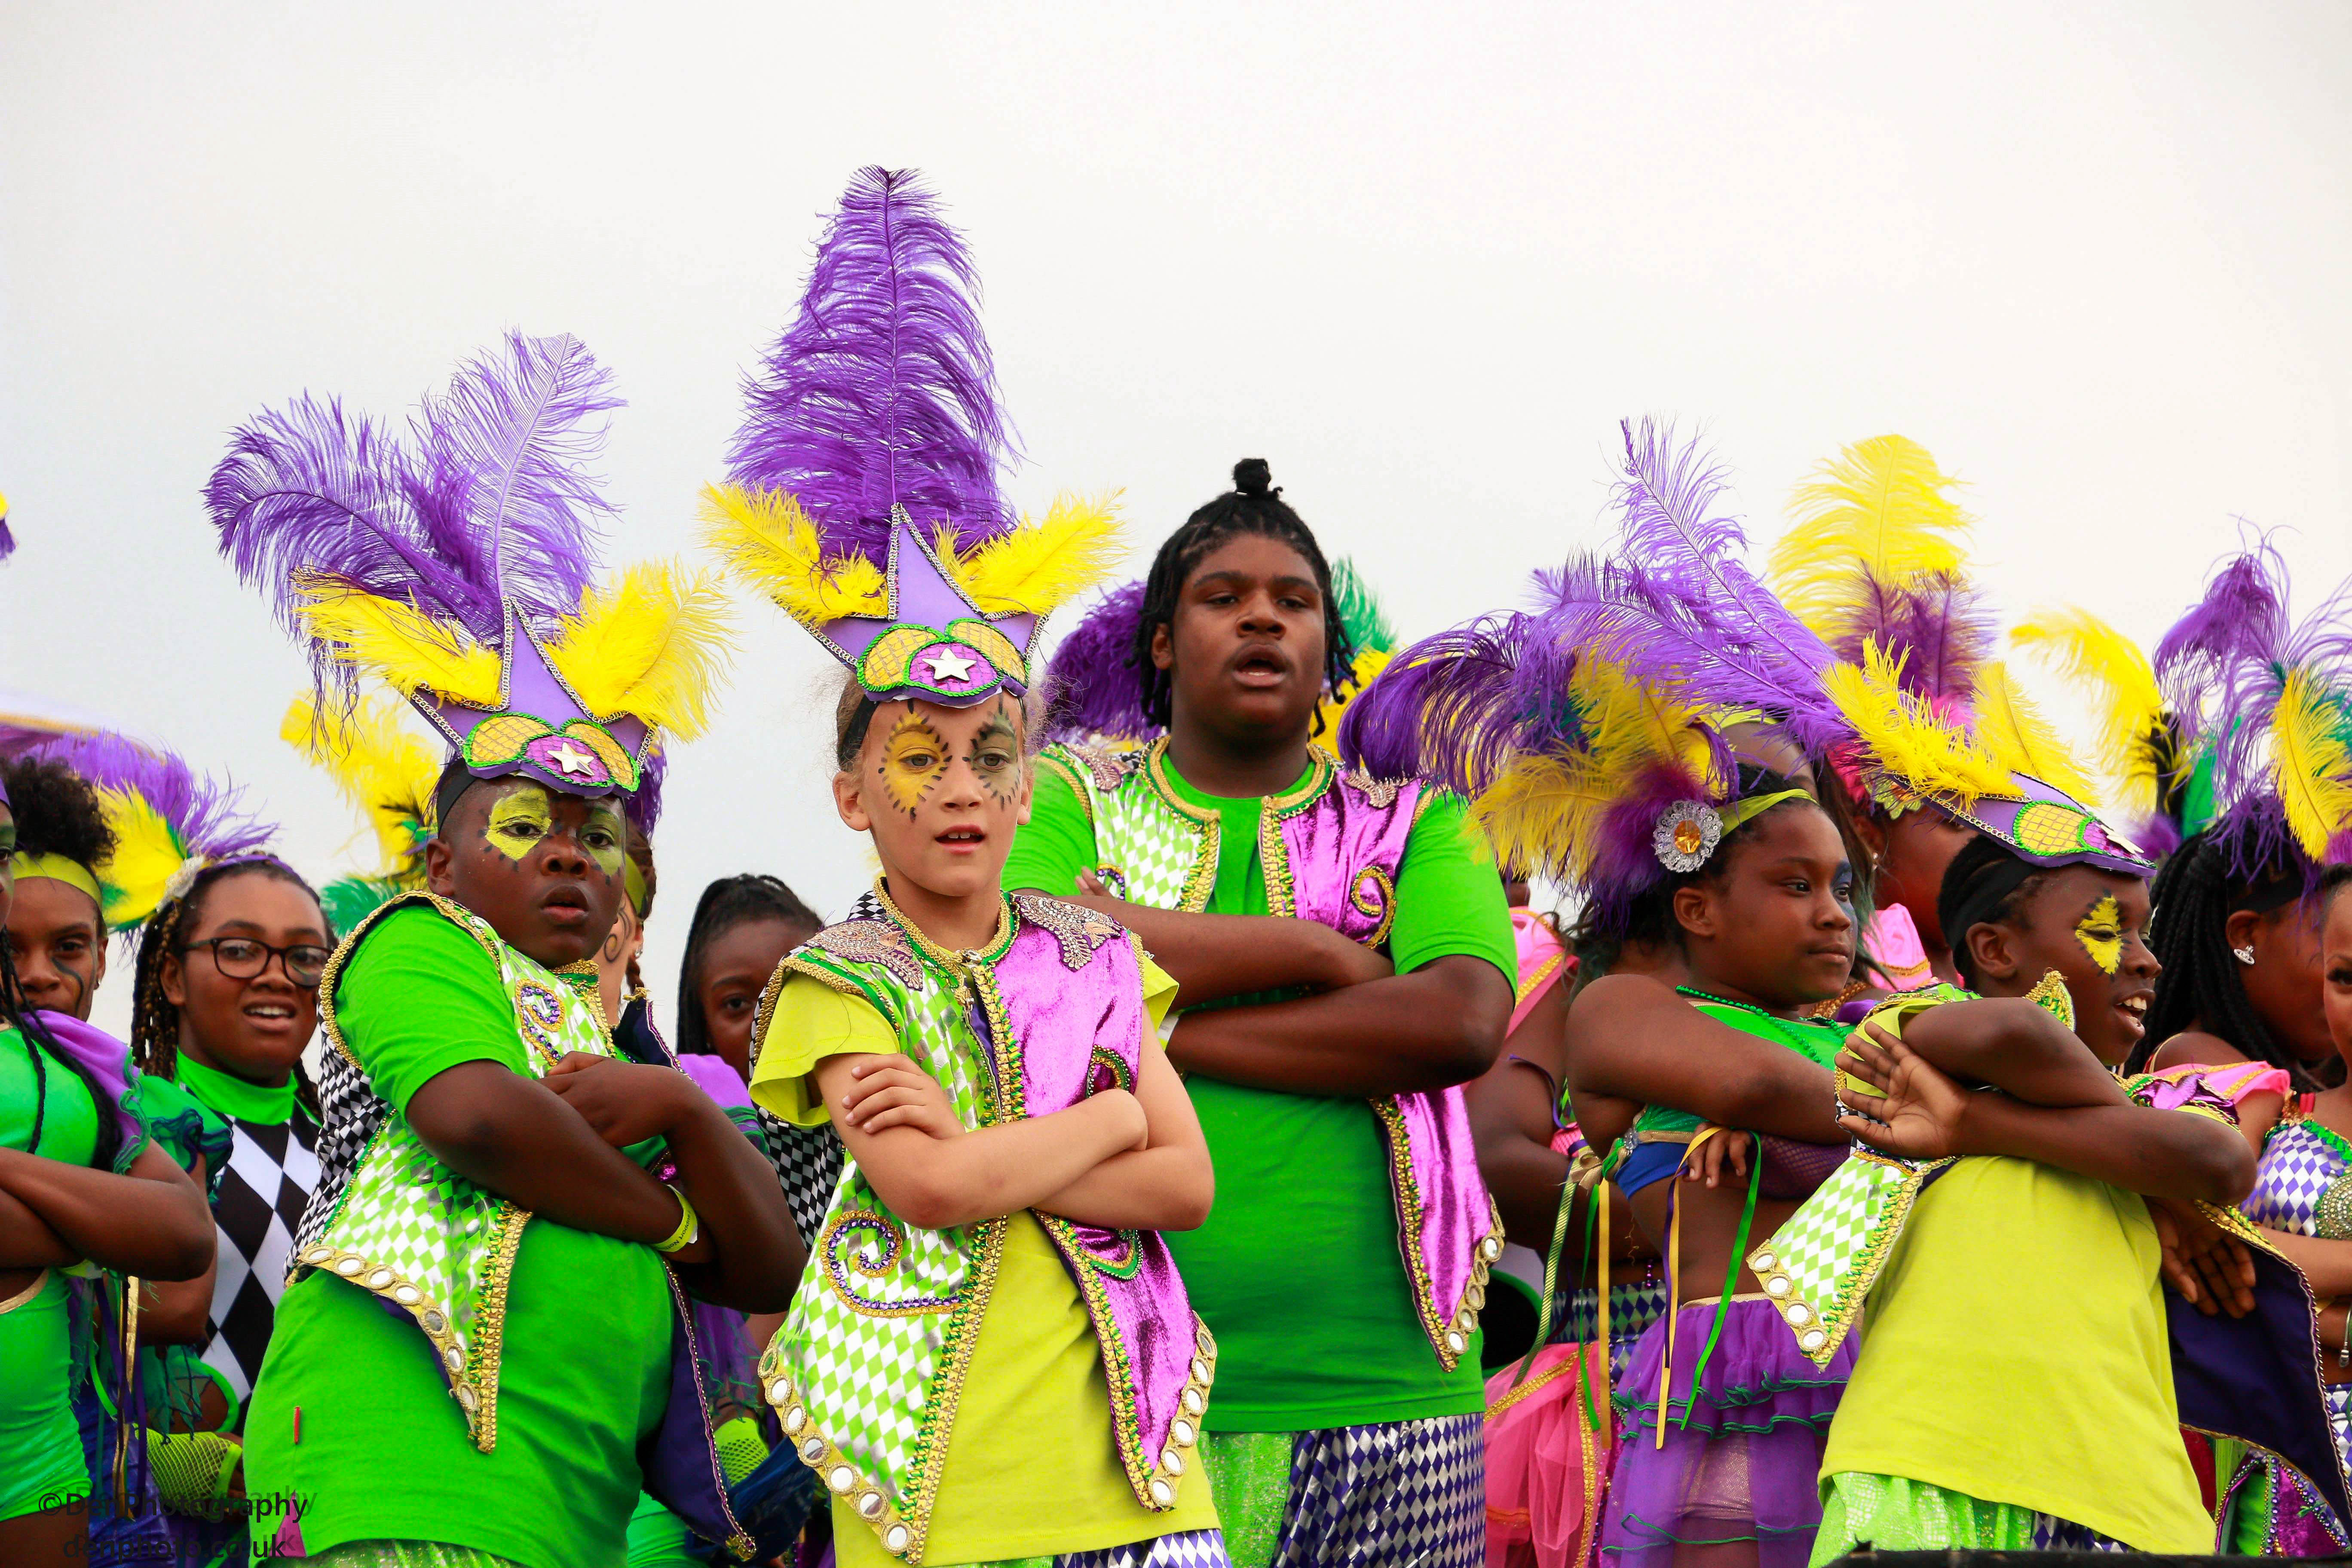 A group of young people perform in bright carnival costumes and purple and yellow headdresses